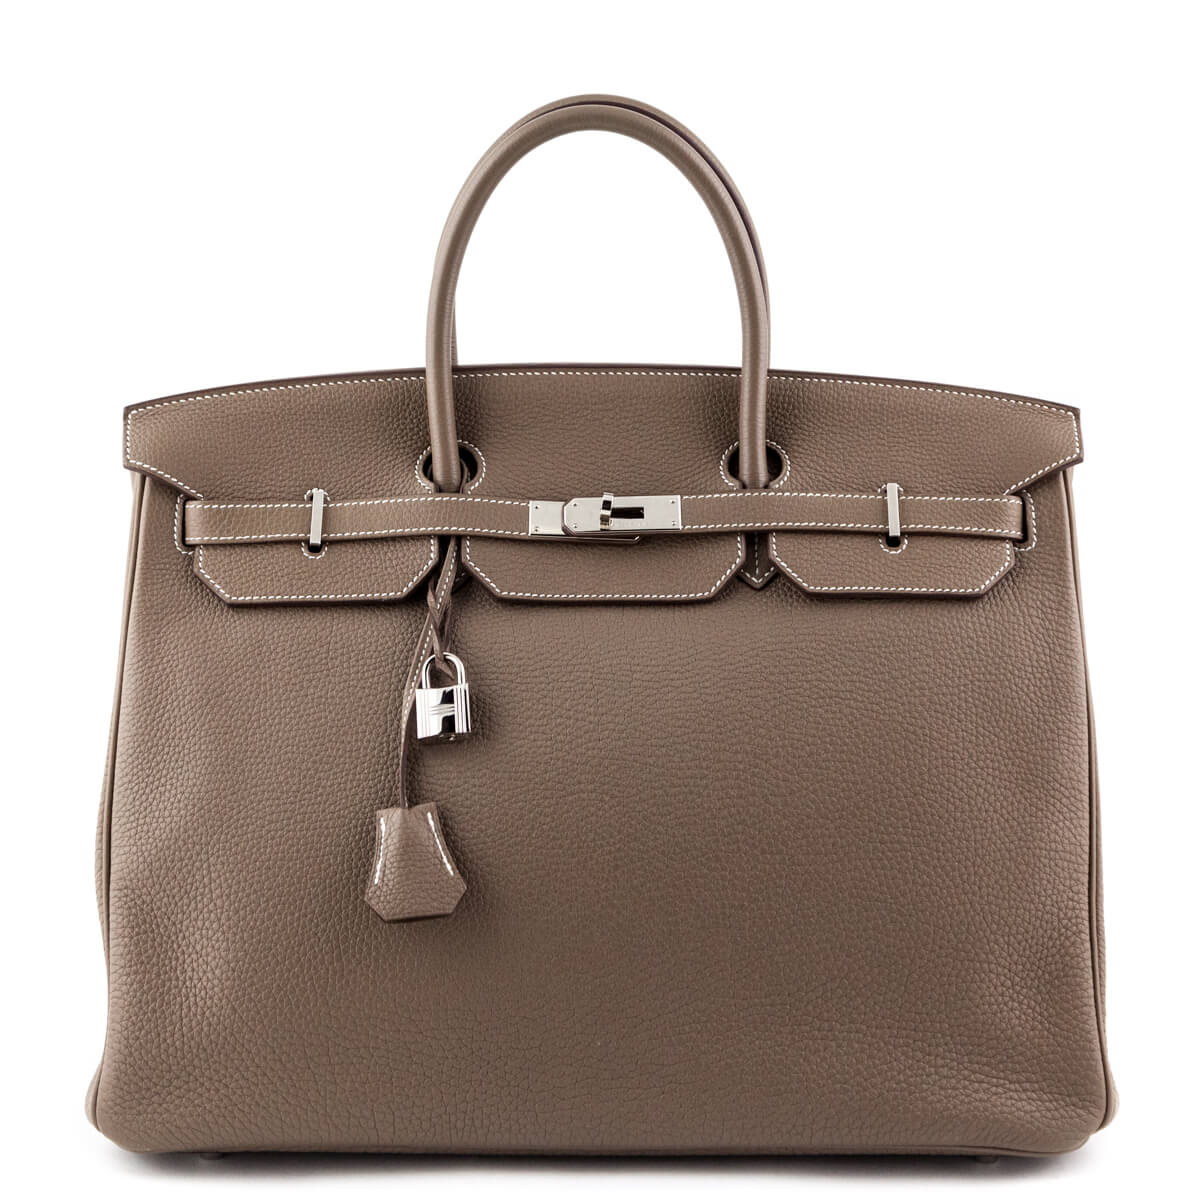 31179db492c3 Hermes Etoupe Togo Birkin 40 - LOVE that BAG - Preowned Authentic Designer  Handbags ...